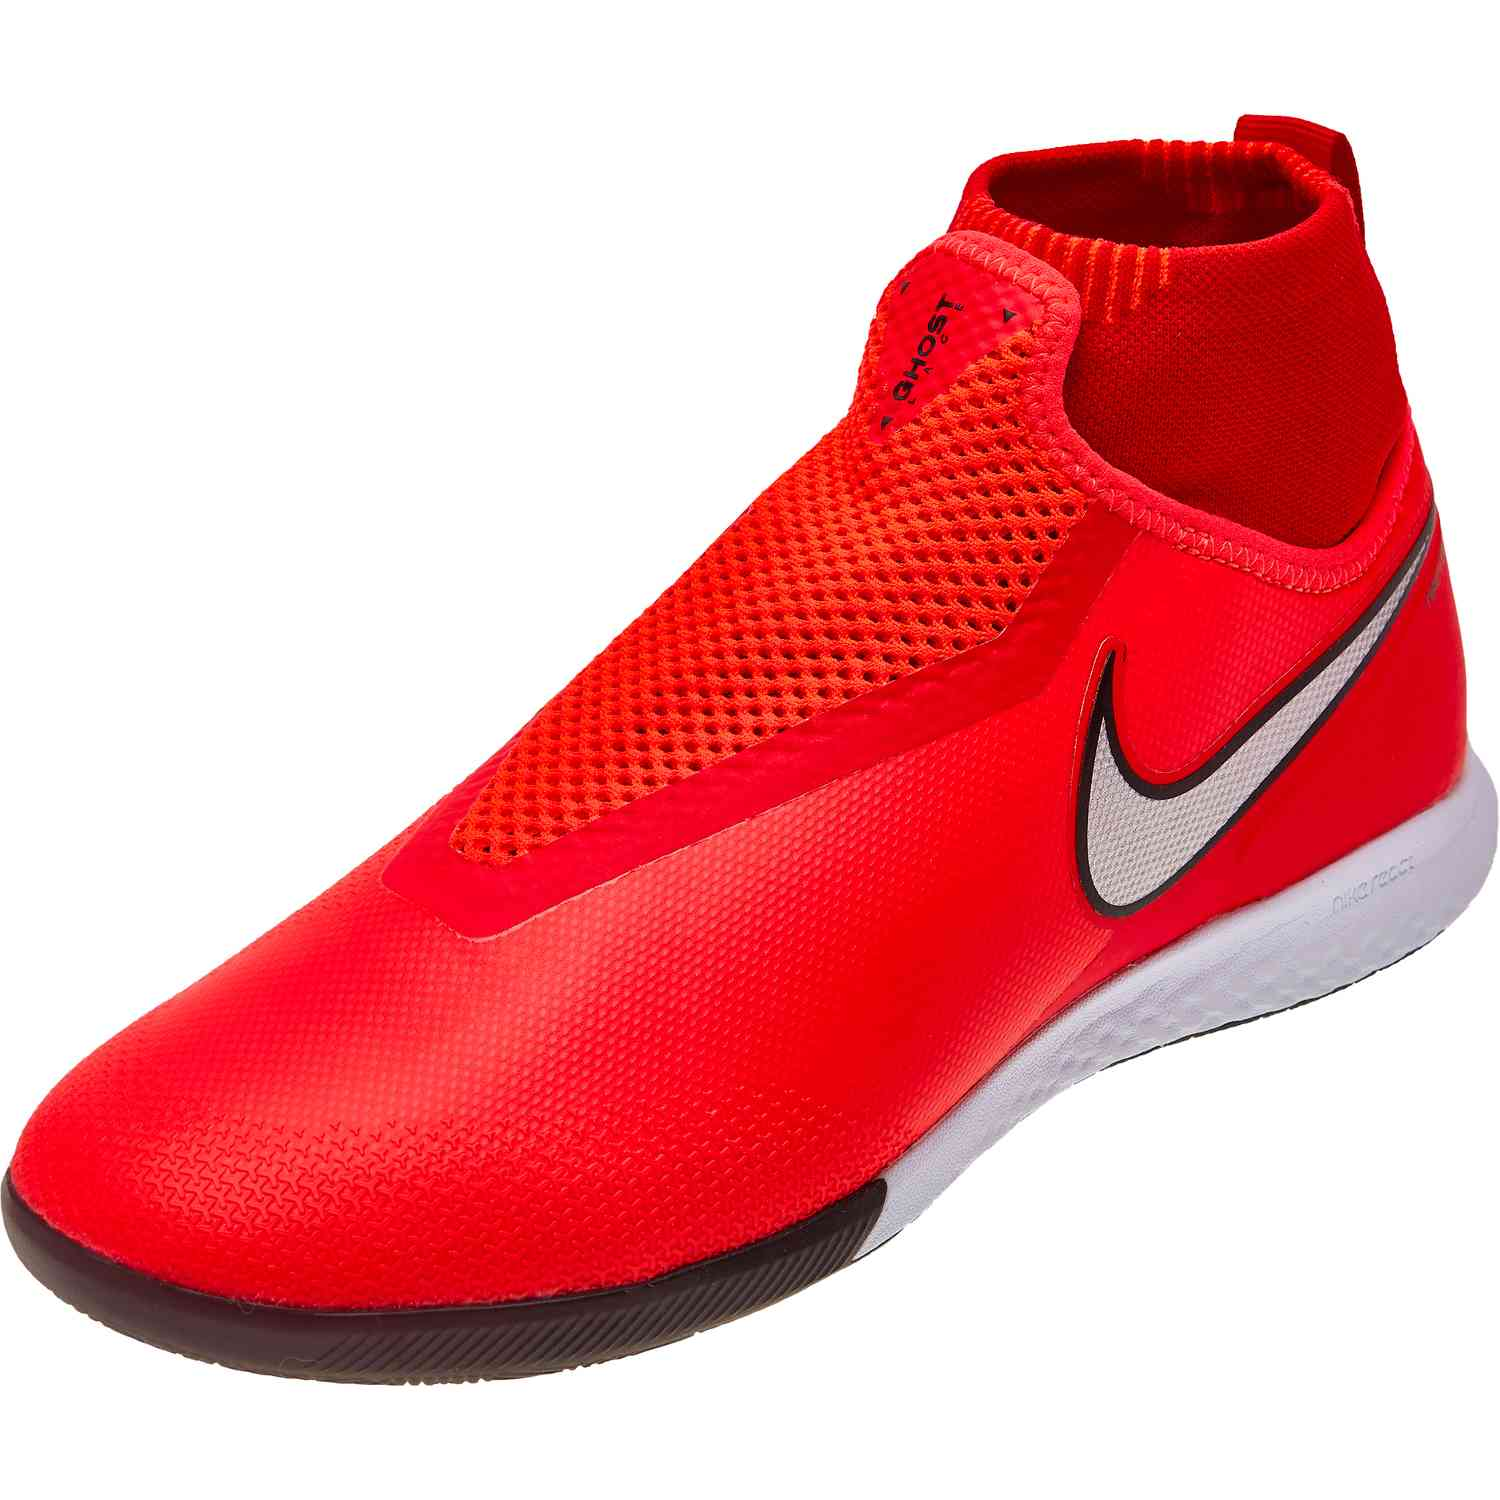 ff1f449ef Nike Phantom Vision Pro IC - Game Over - SoccerPro